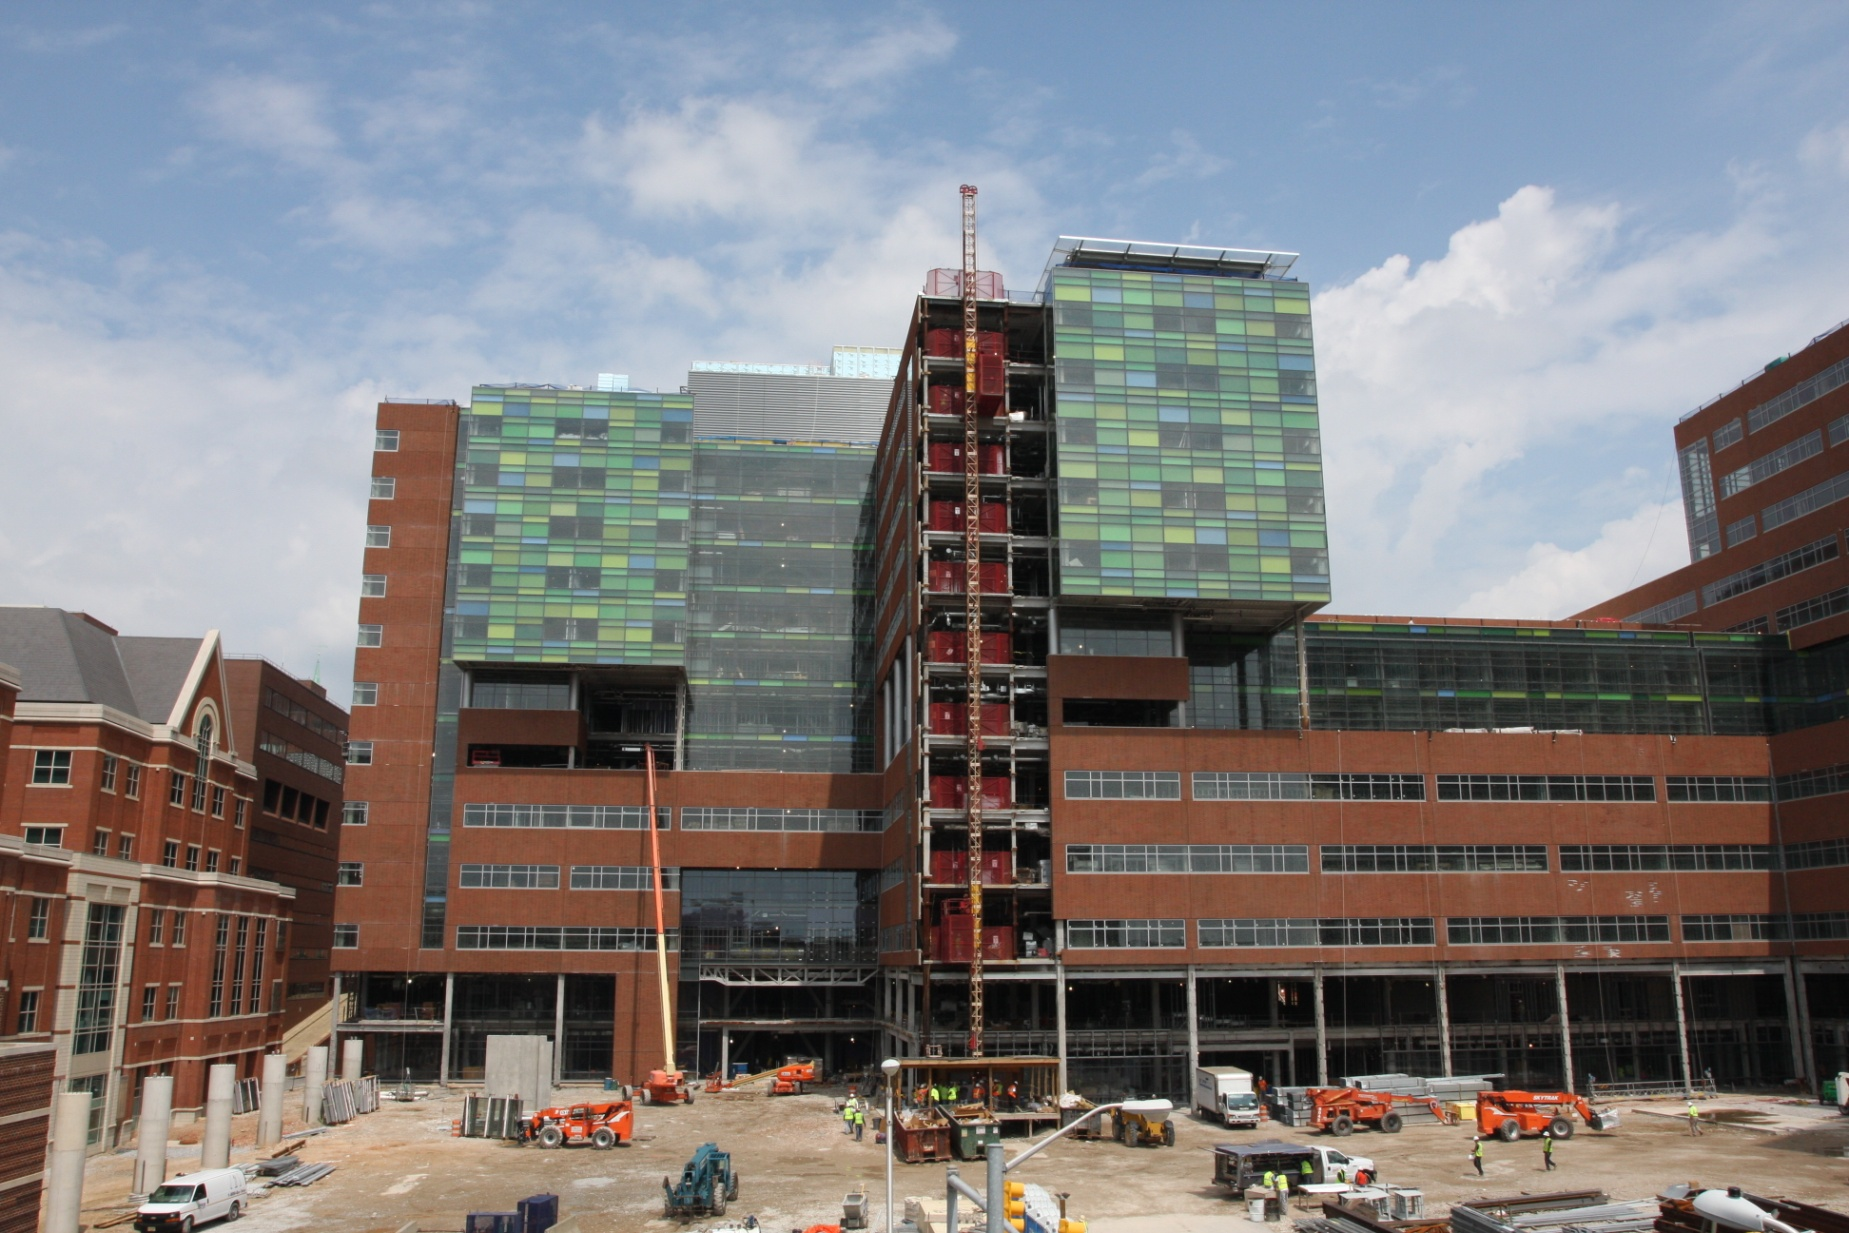 What's Under All the Construction Dust? – The Pathology Blog